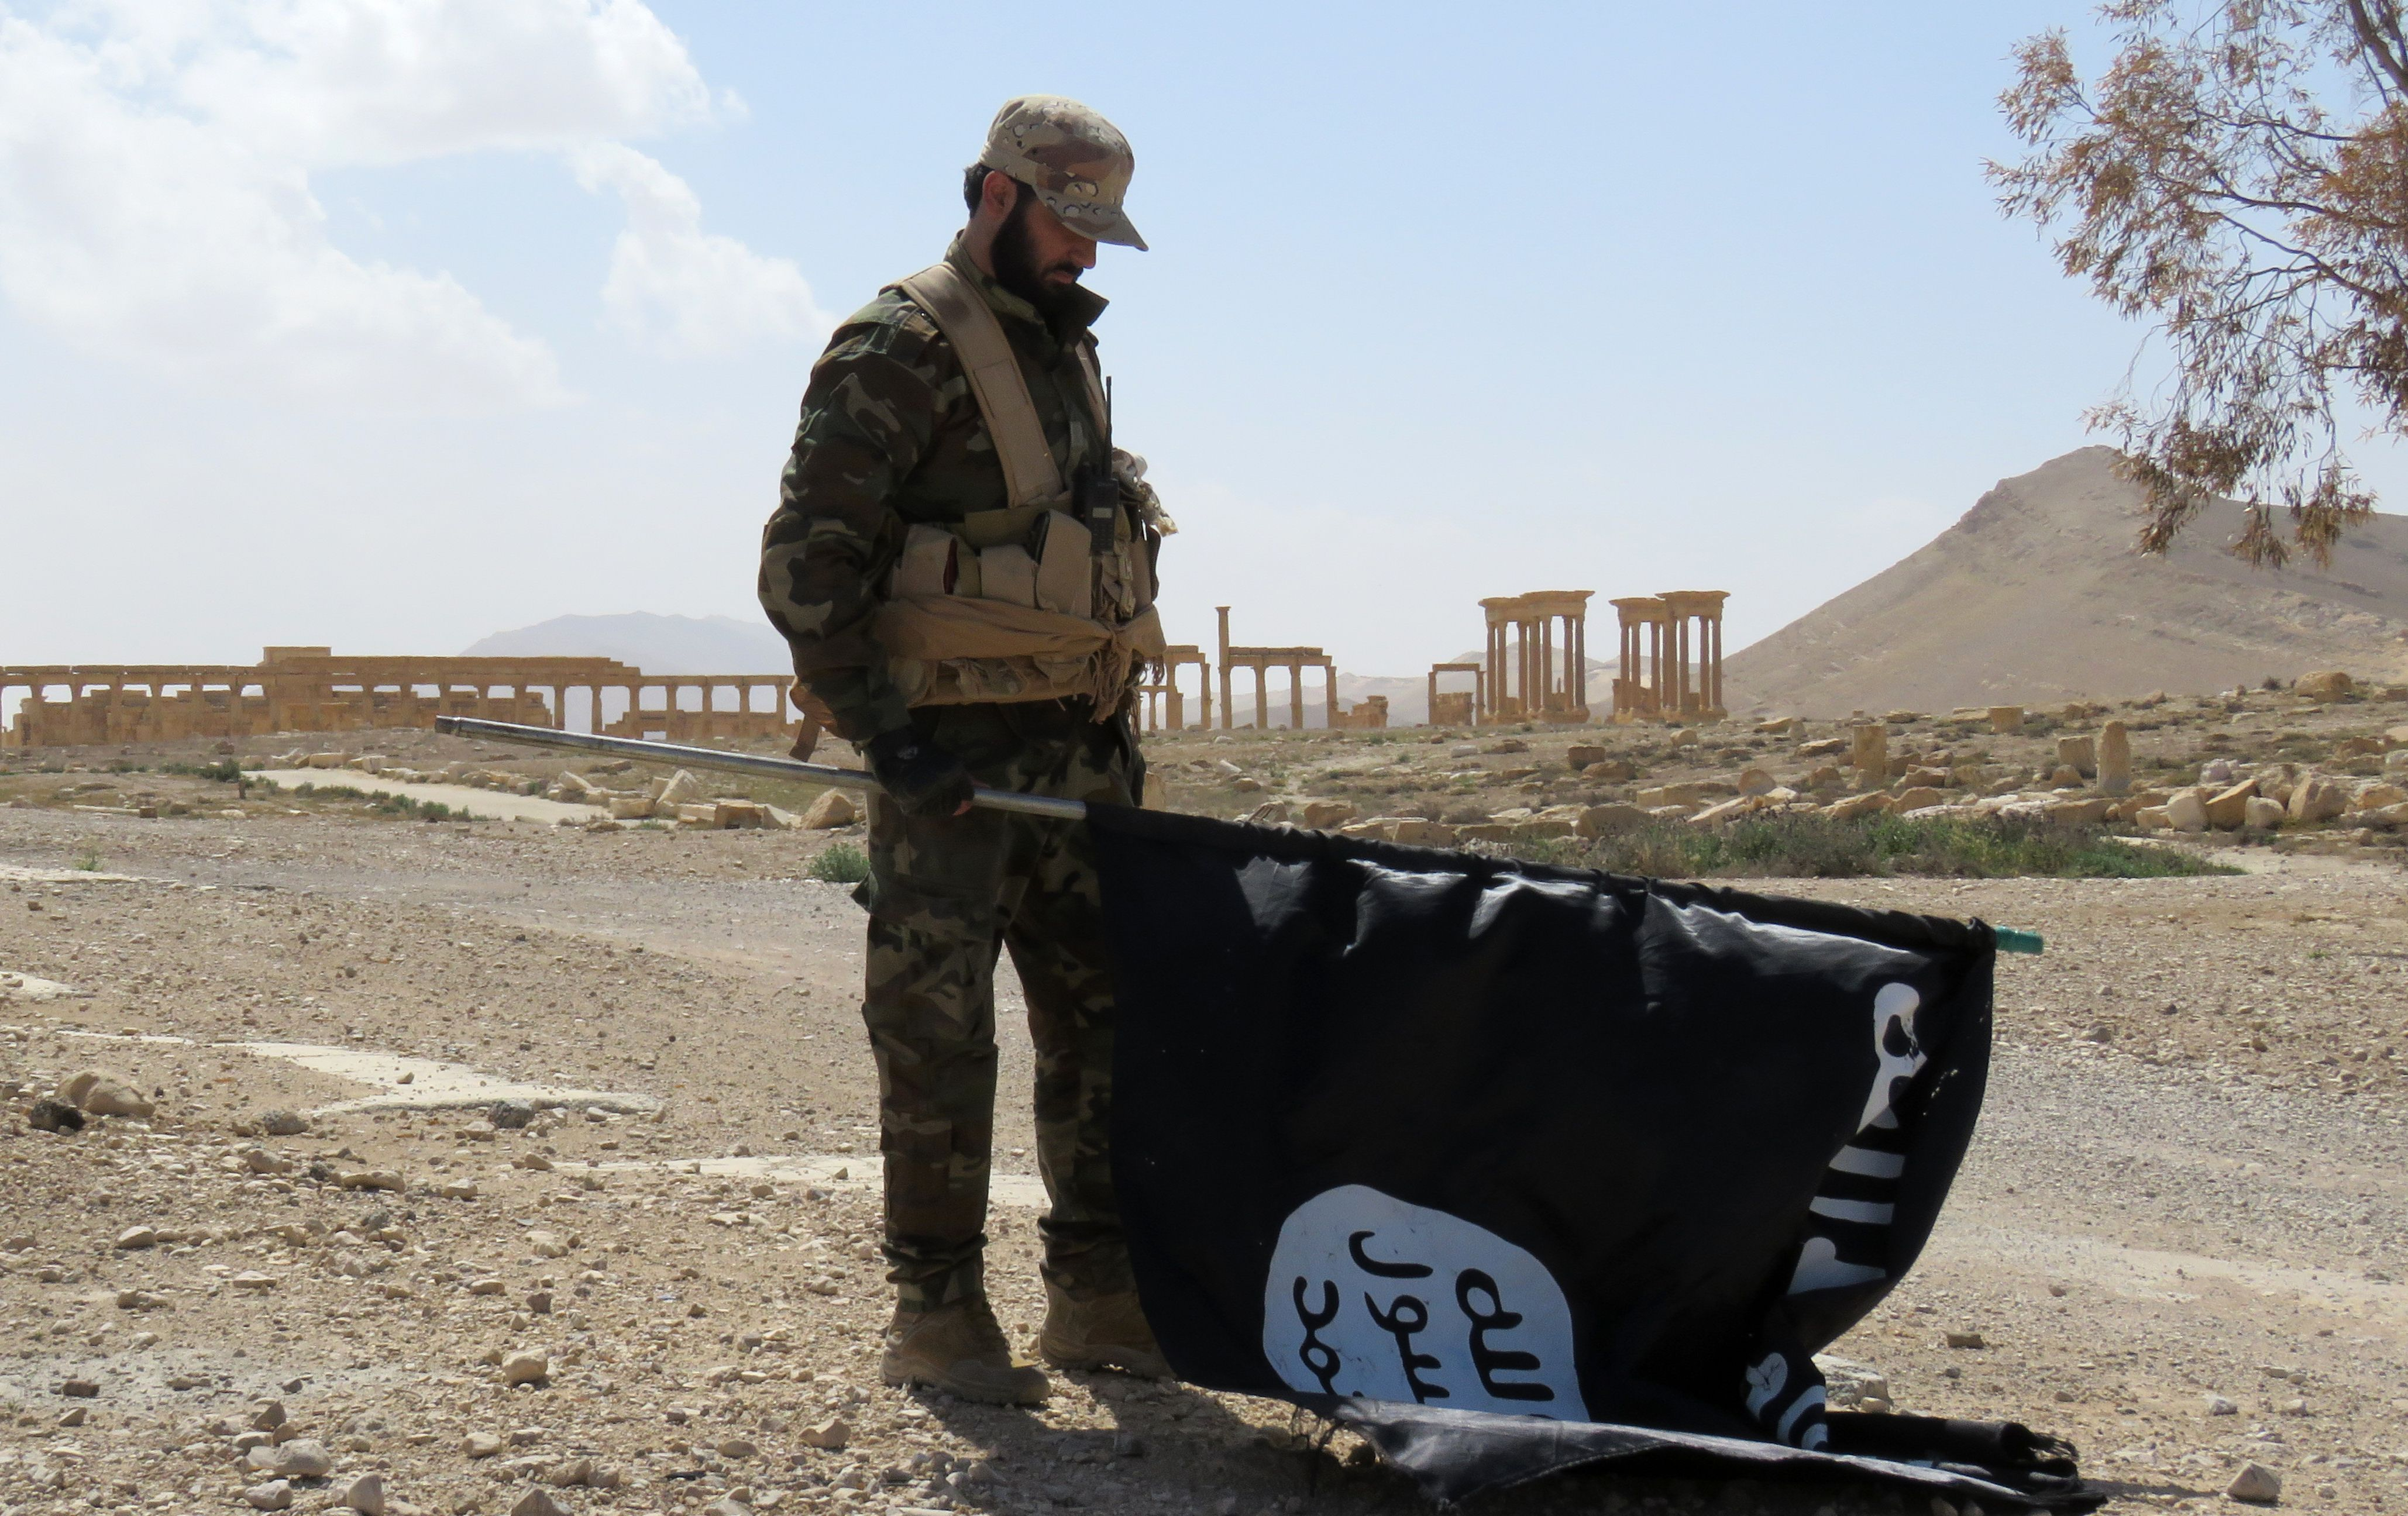 A member of the Syrian pro-government forces carries an Islamic State (IS) group flag as he stands on a street in the ancient city of Palmyra on March 27, 2016, after troops recaptured the city from IS jihadists.